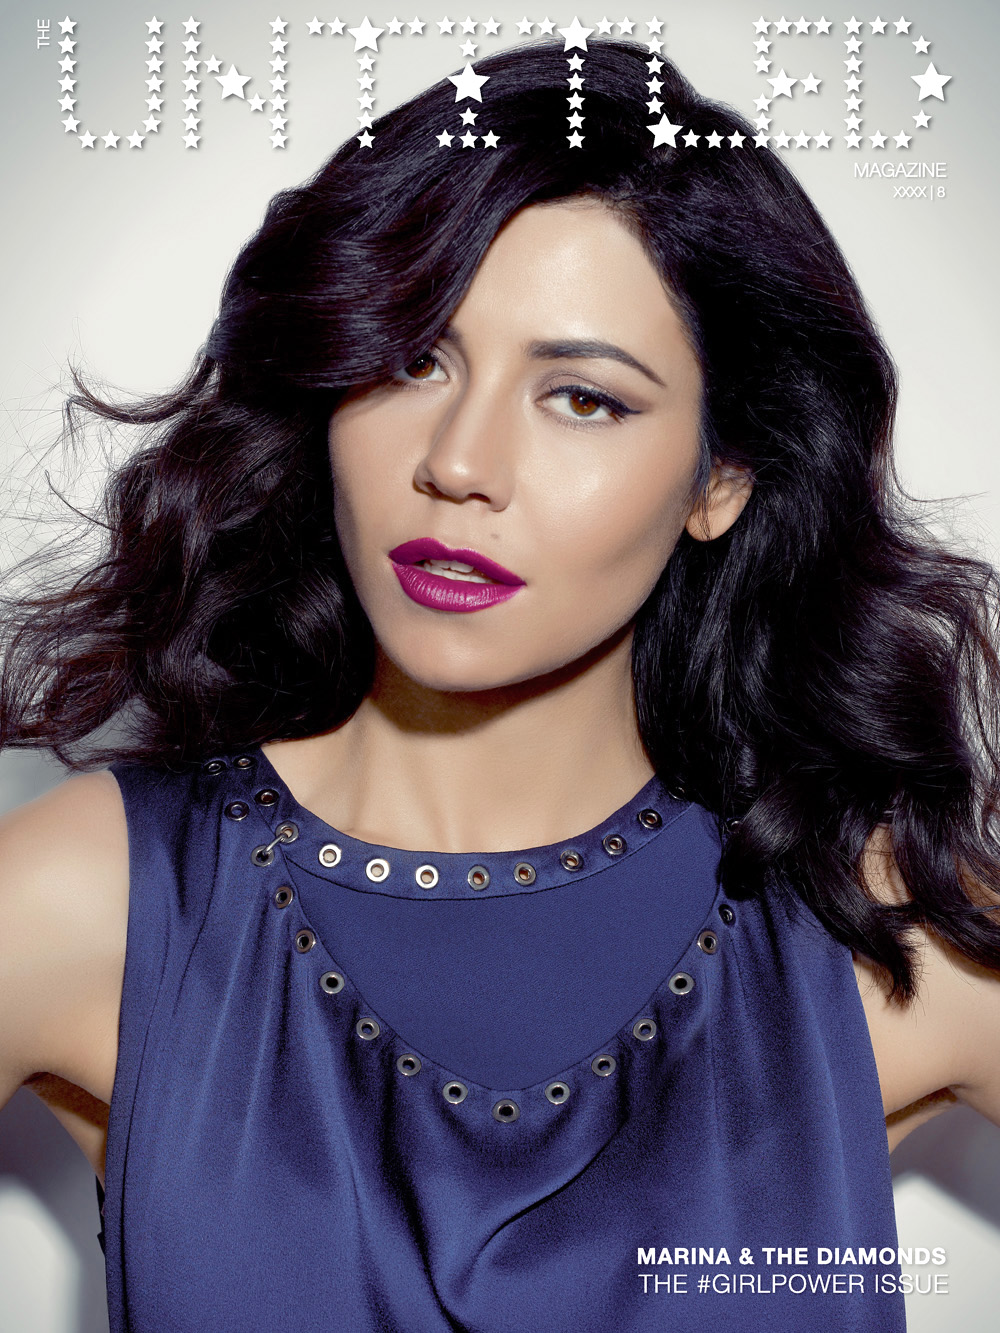 The-Untitled-Magazine-Issue-8-Marina-and-The-Diamonds-Cover-LR.jpg